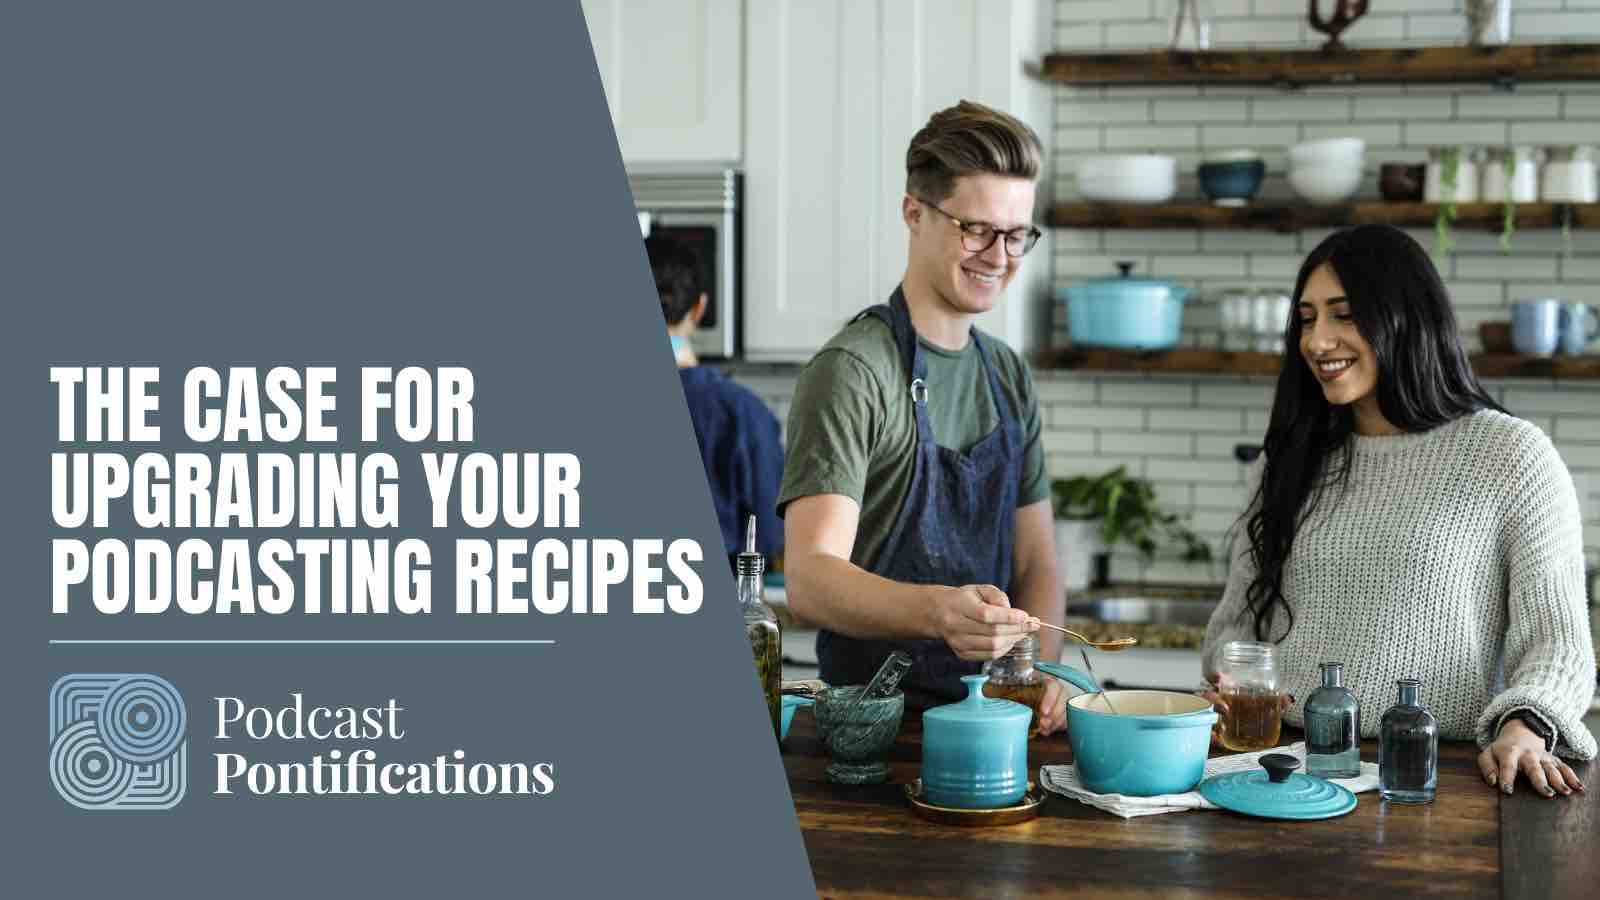 The Case For Upgrading Your Podcasting Recipes